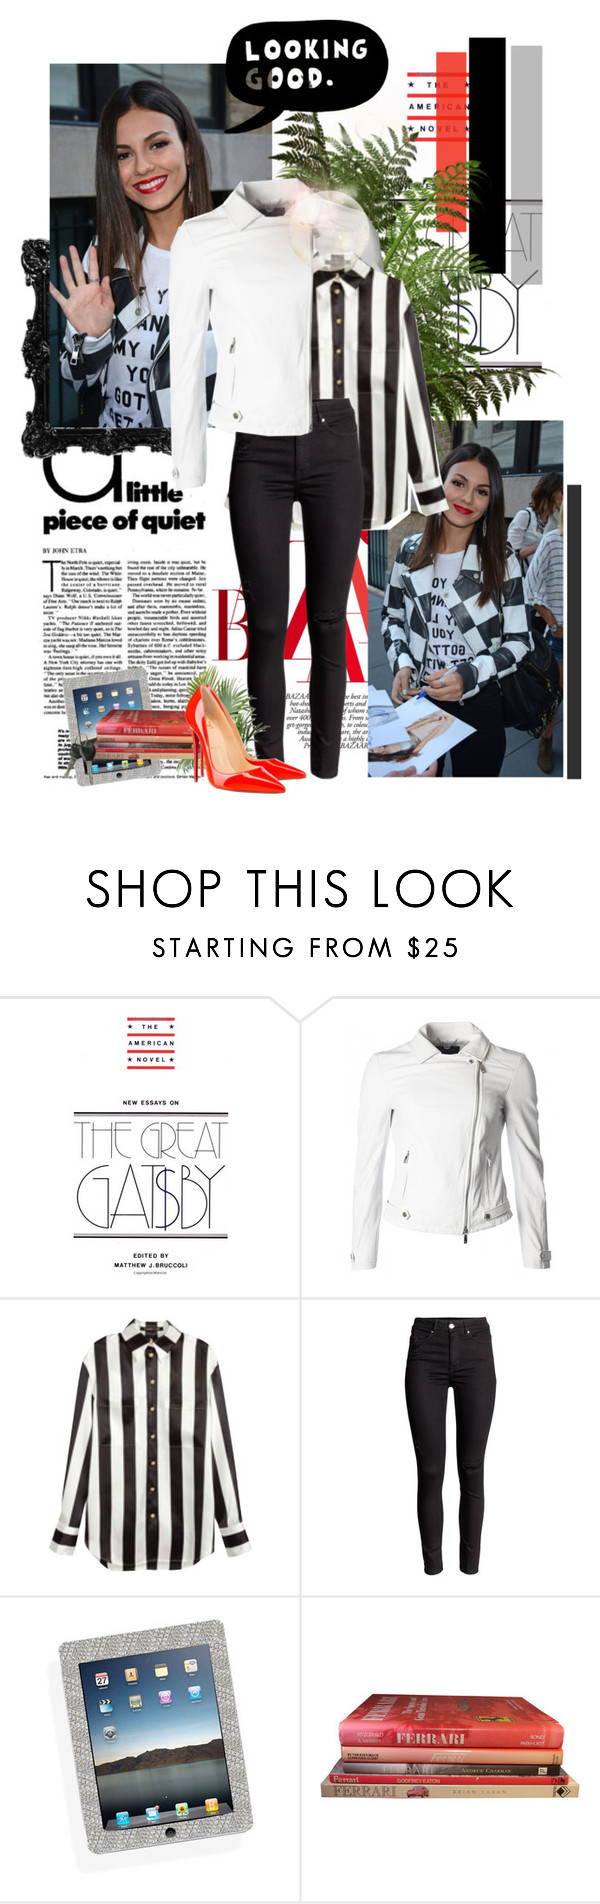 """""""love is louder the the pressure to be perfect - victoria justice"""" by nicole-s-t-u-l ❤ liked on Polyvore featuring Giorgio Armani, Balmain, Ferrari, Christian Louboutin, ESPRIT, women's clothing, women, female, woman and misses"""